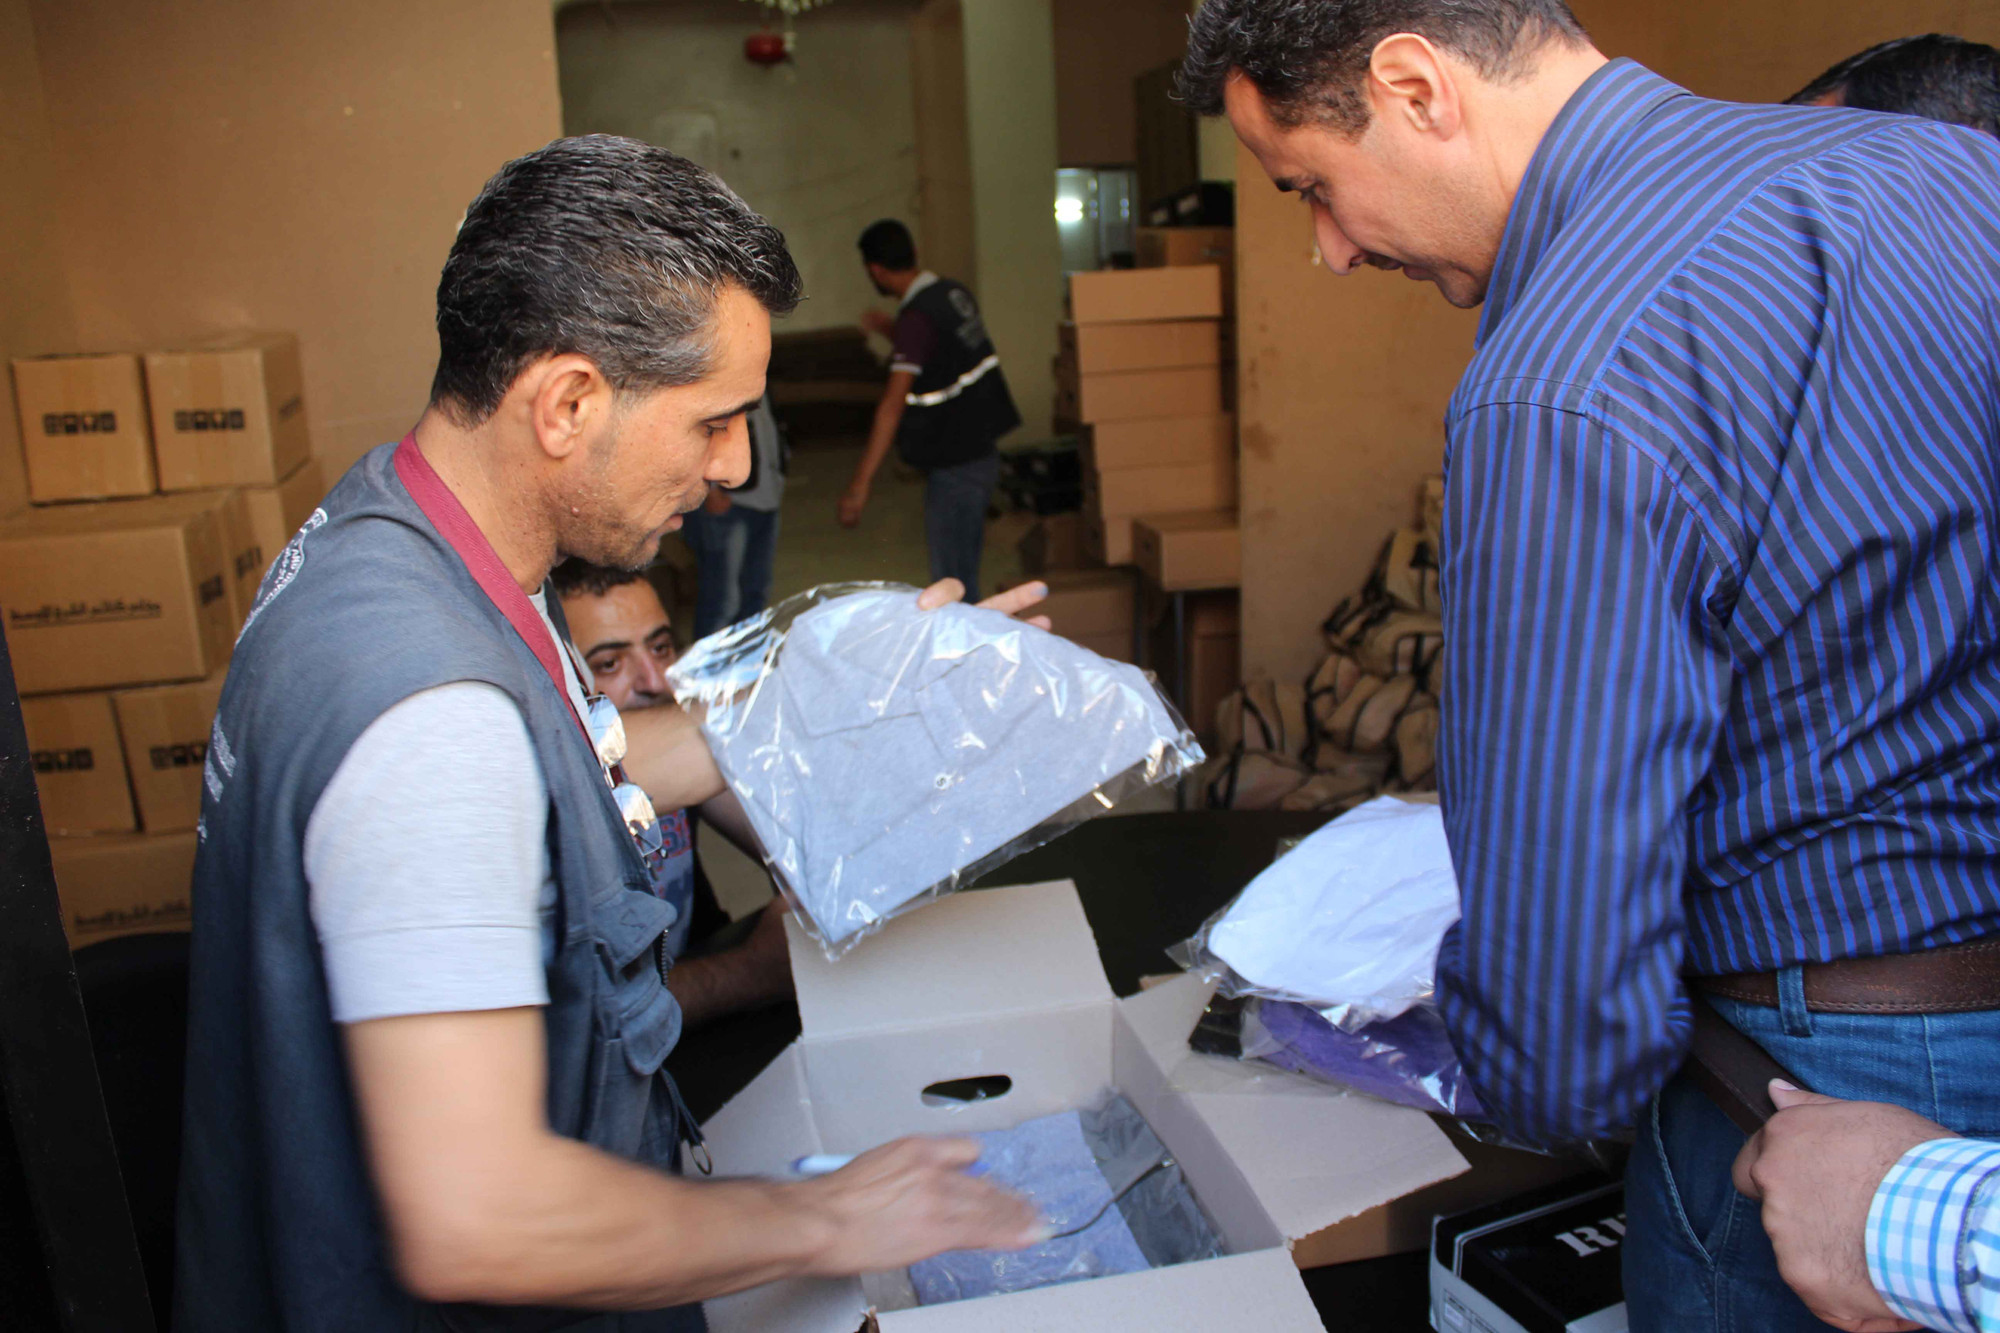 MCC partner MECC provides household items for internally displaced people and host communities in Syria.